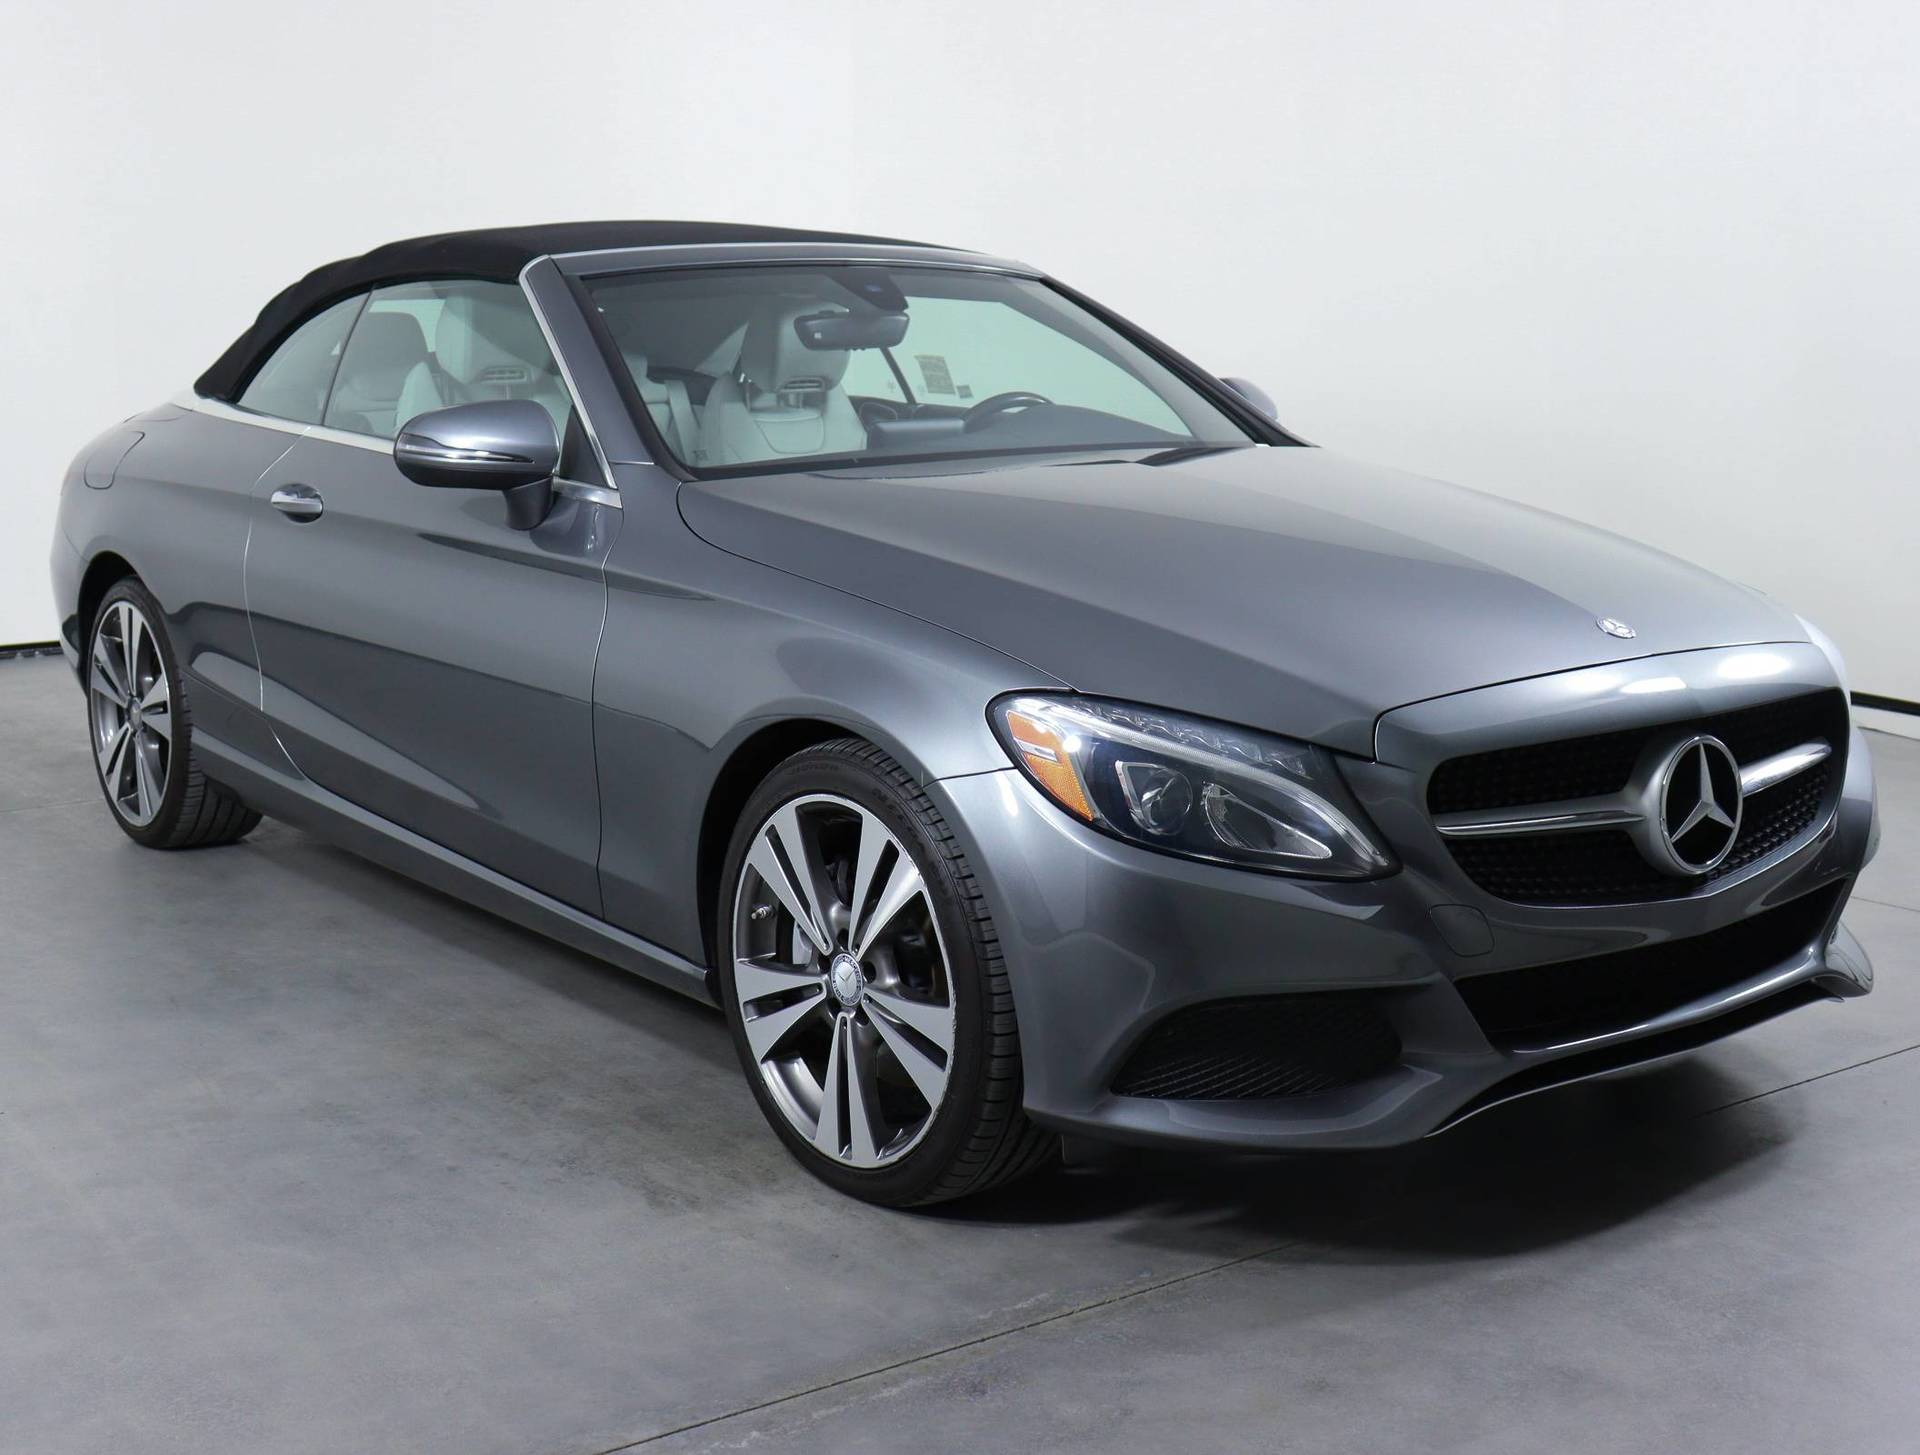 used vehicle - Convertible MERCEDES-BENZ C-CLASS 2017